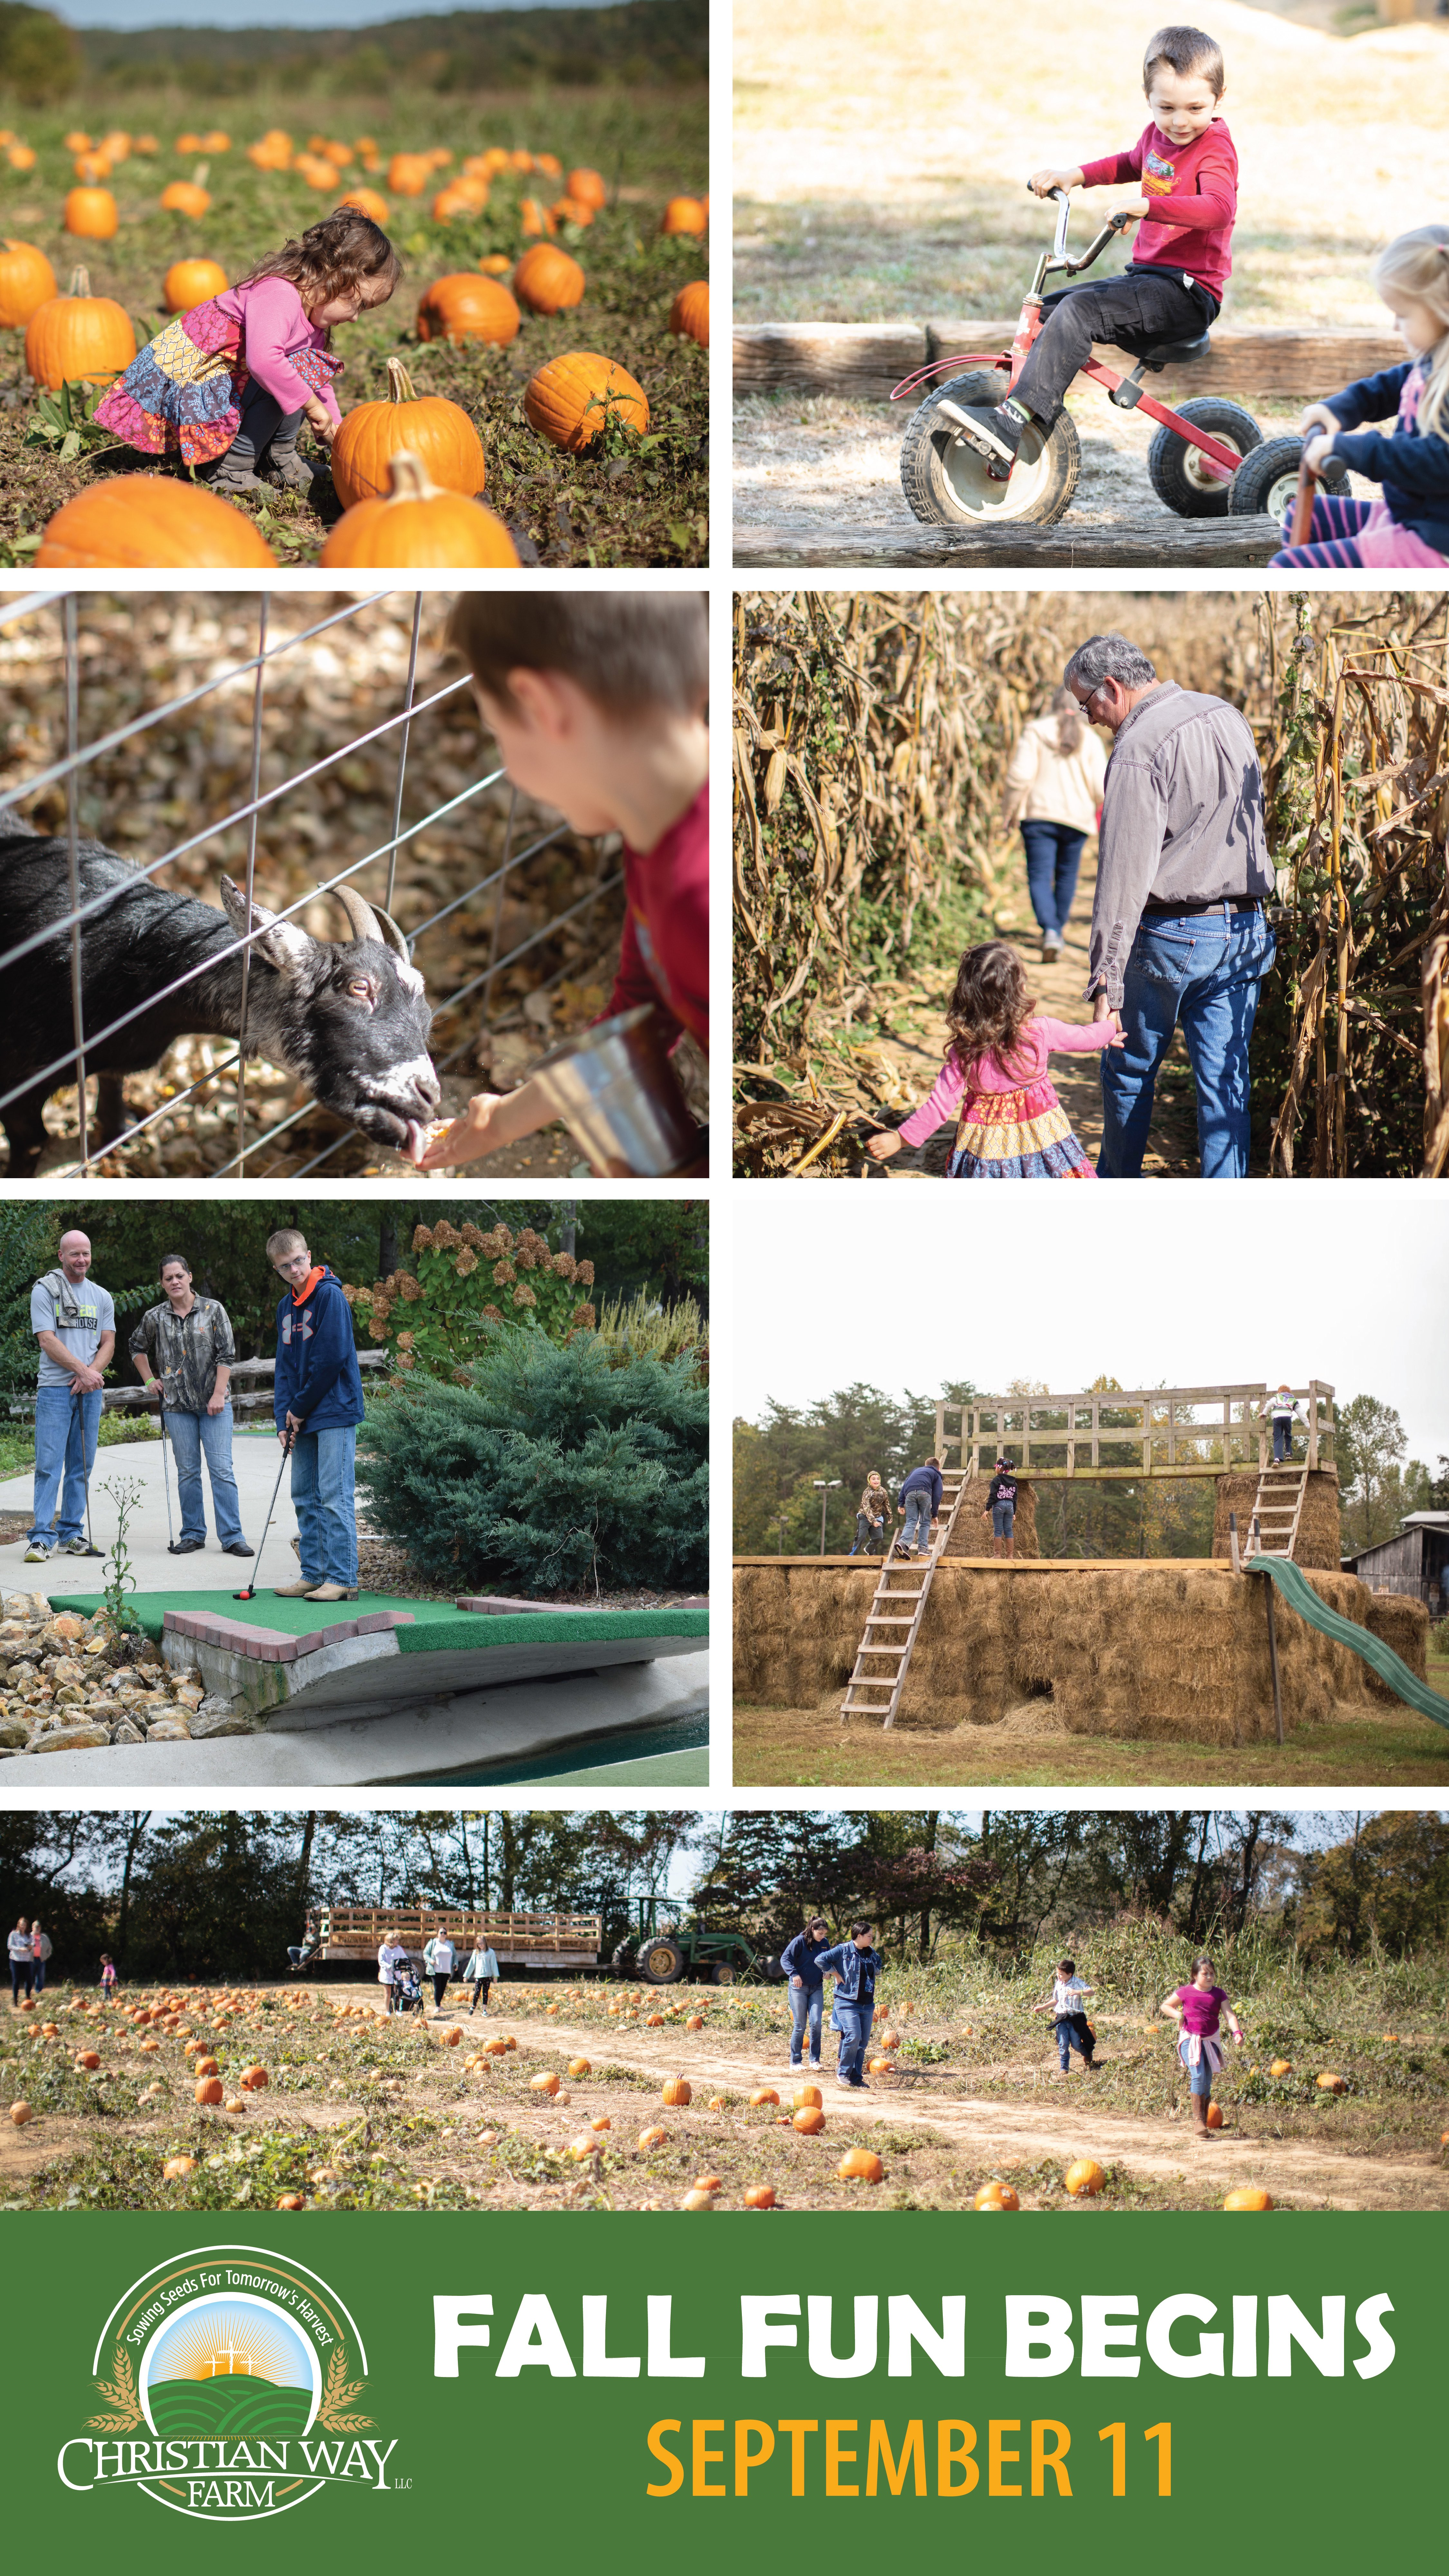 Christian Way Farm Pumpkin Patch and Fall Activities for Kids